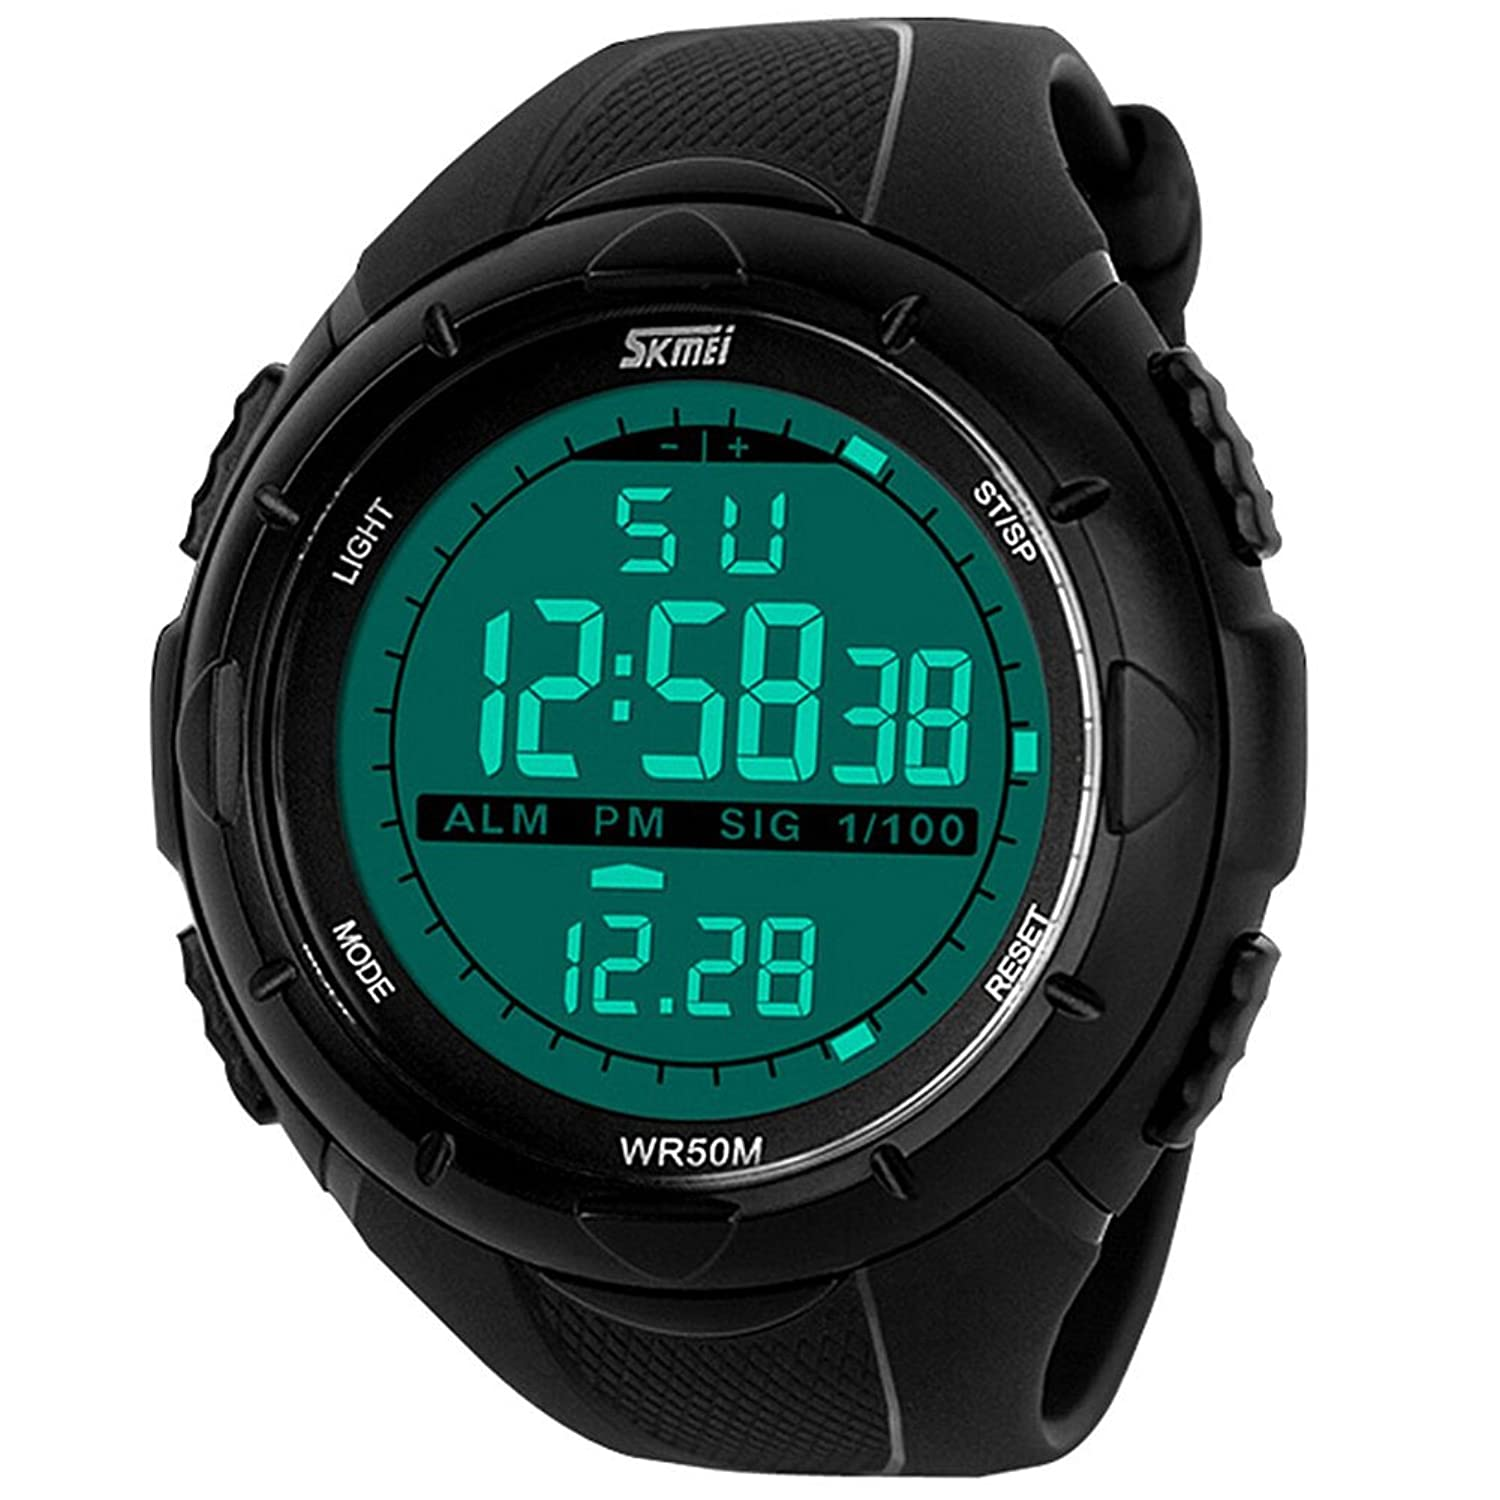 Aposon Mens Multifunctional Military Waterproof Big Case Rubber Band Digital LED Sport Watch - Black